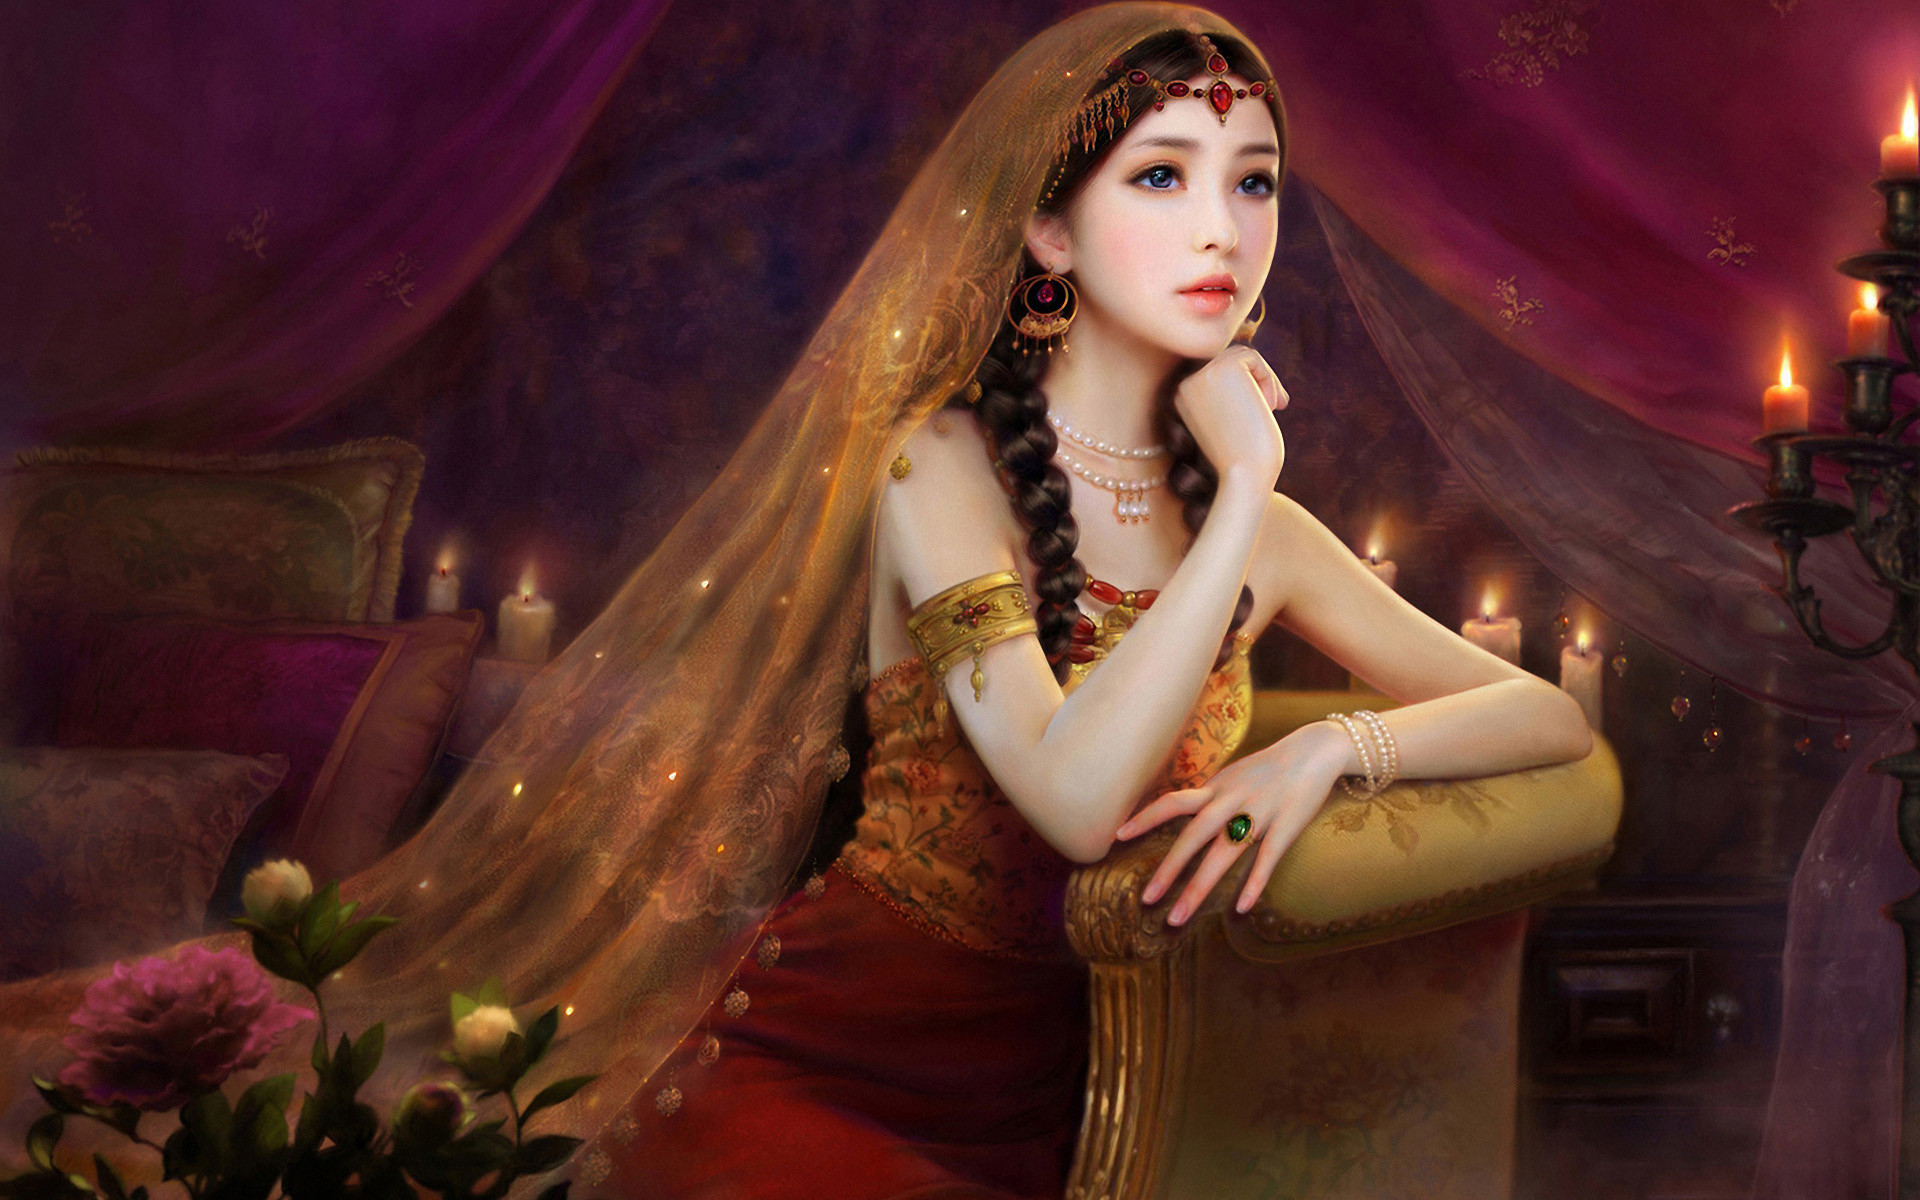 Queen Wallpaper Hd New Waiting For Someone   Data Src - Most Beautiful Girl Paintings - HD Wallpaper